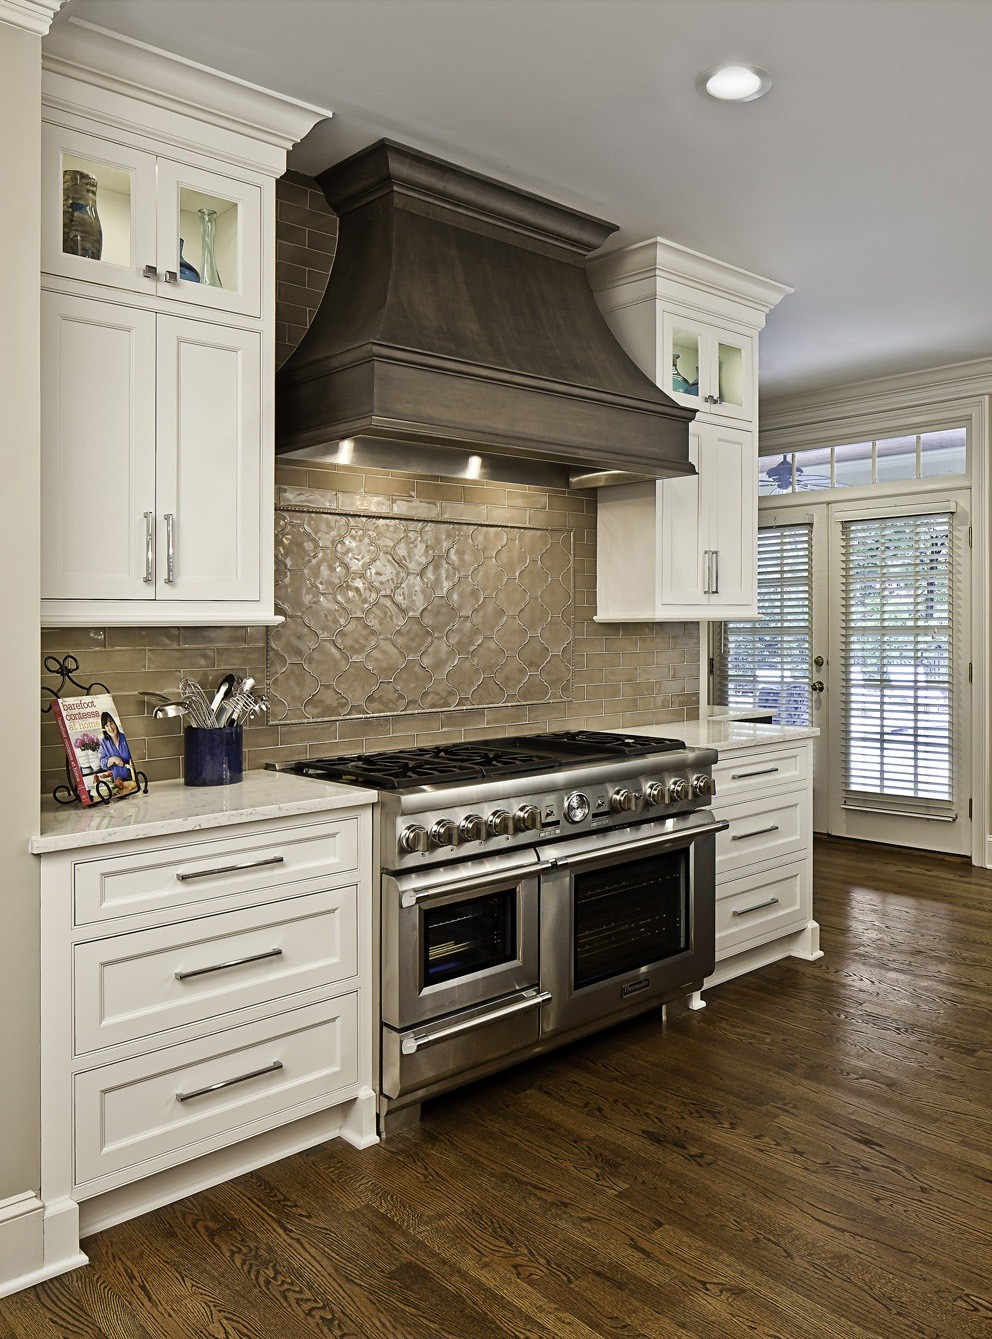 Kitchen Cabinets Charlotte Nc How to Choose Kitchen Cabinets | Case Charlotte